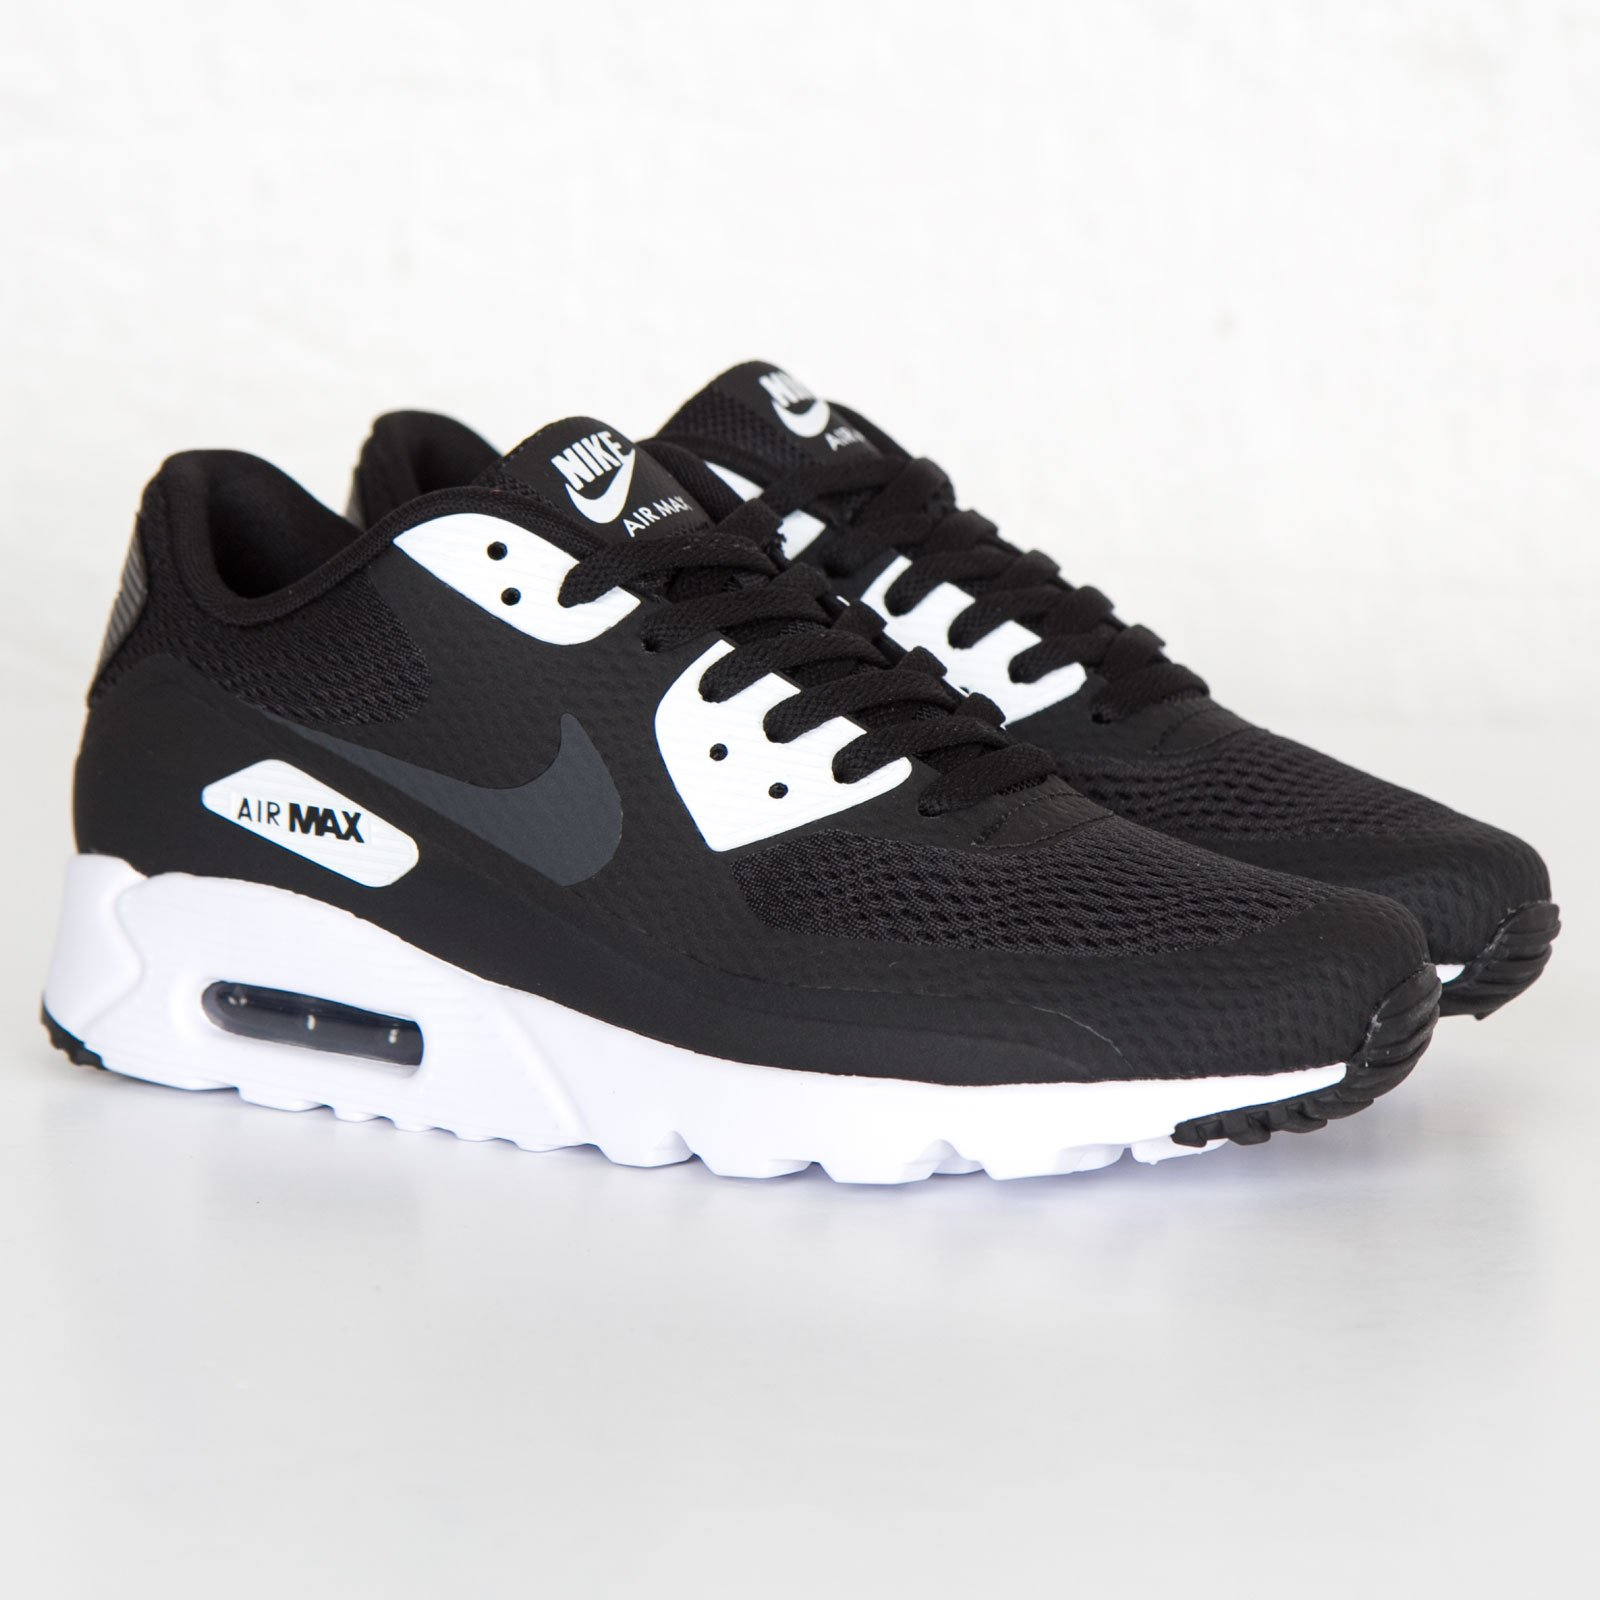 90 Nike 001 Sneakersnstuff Max Ultra 819474 Air Essential 34AjScL5Rq